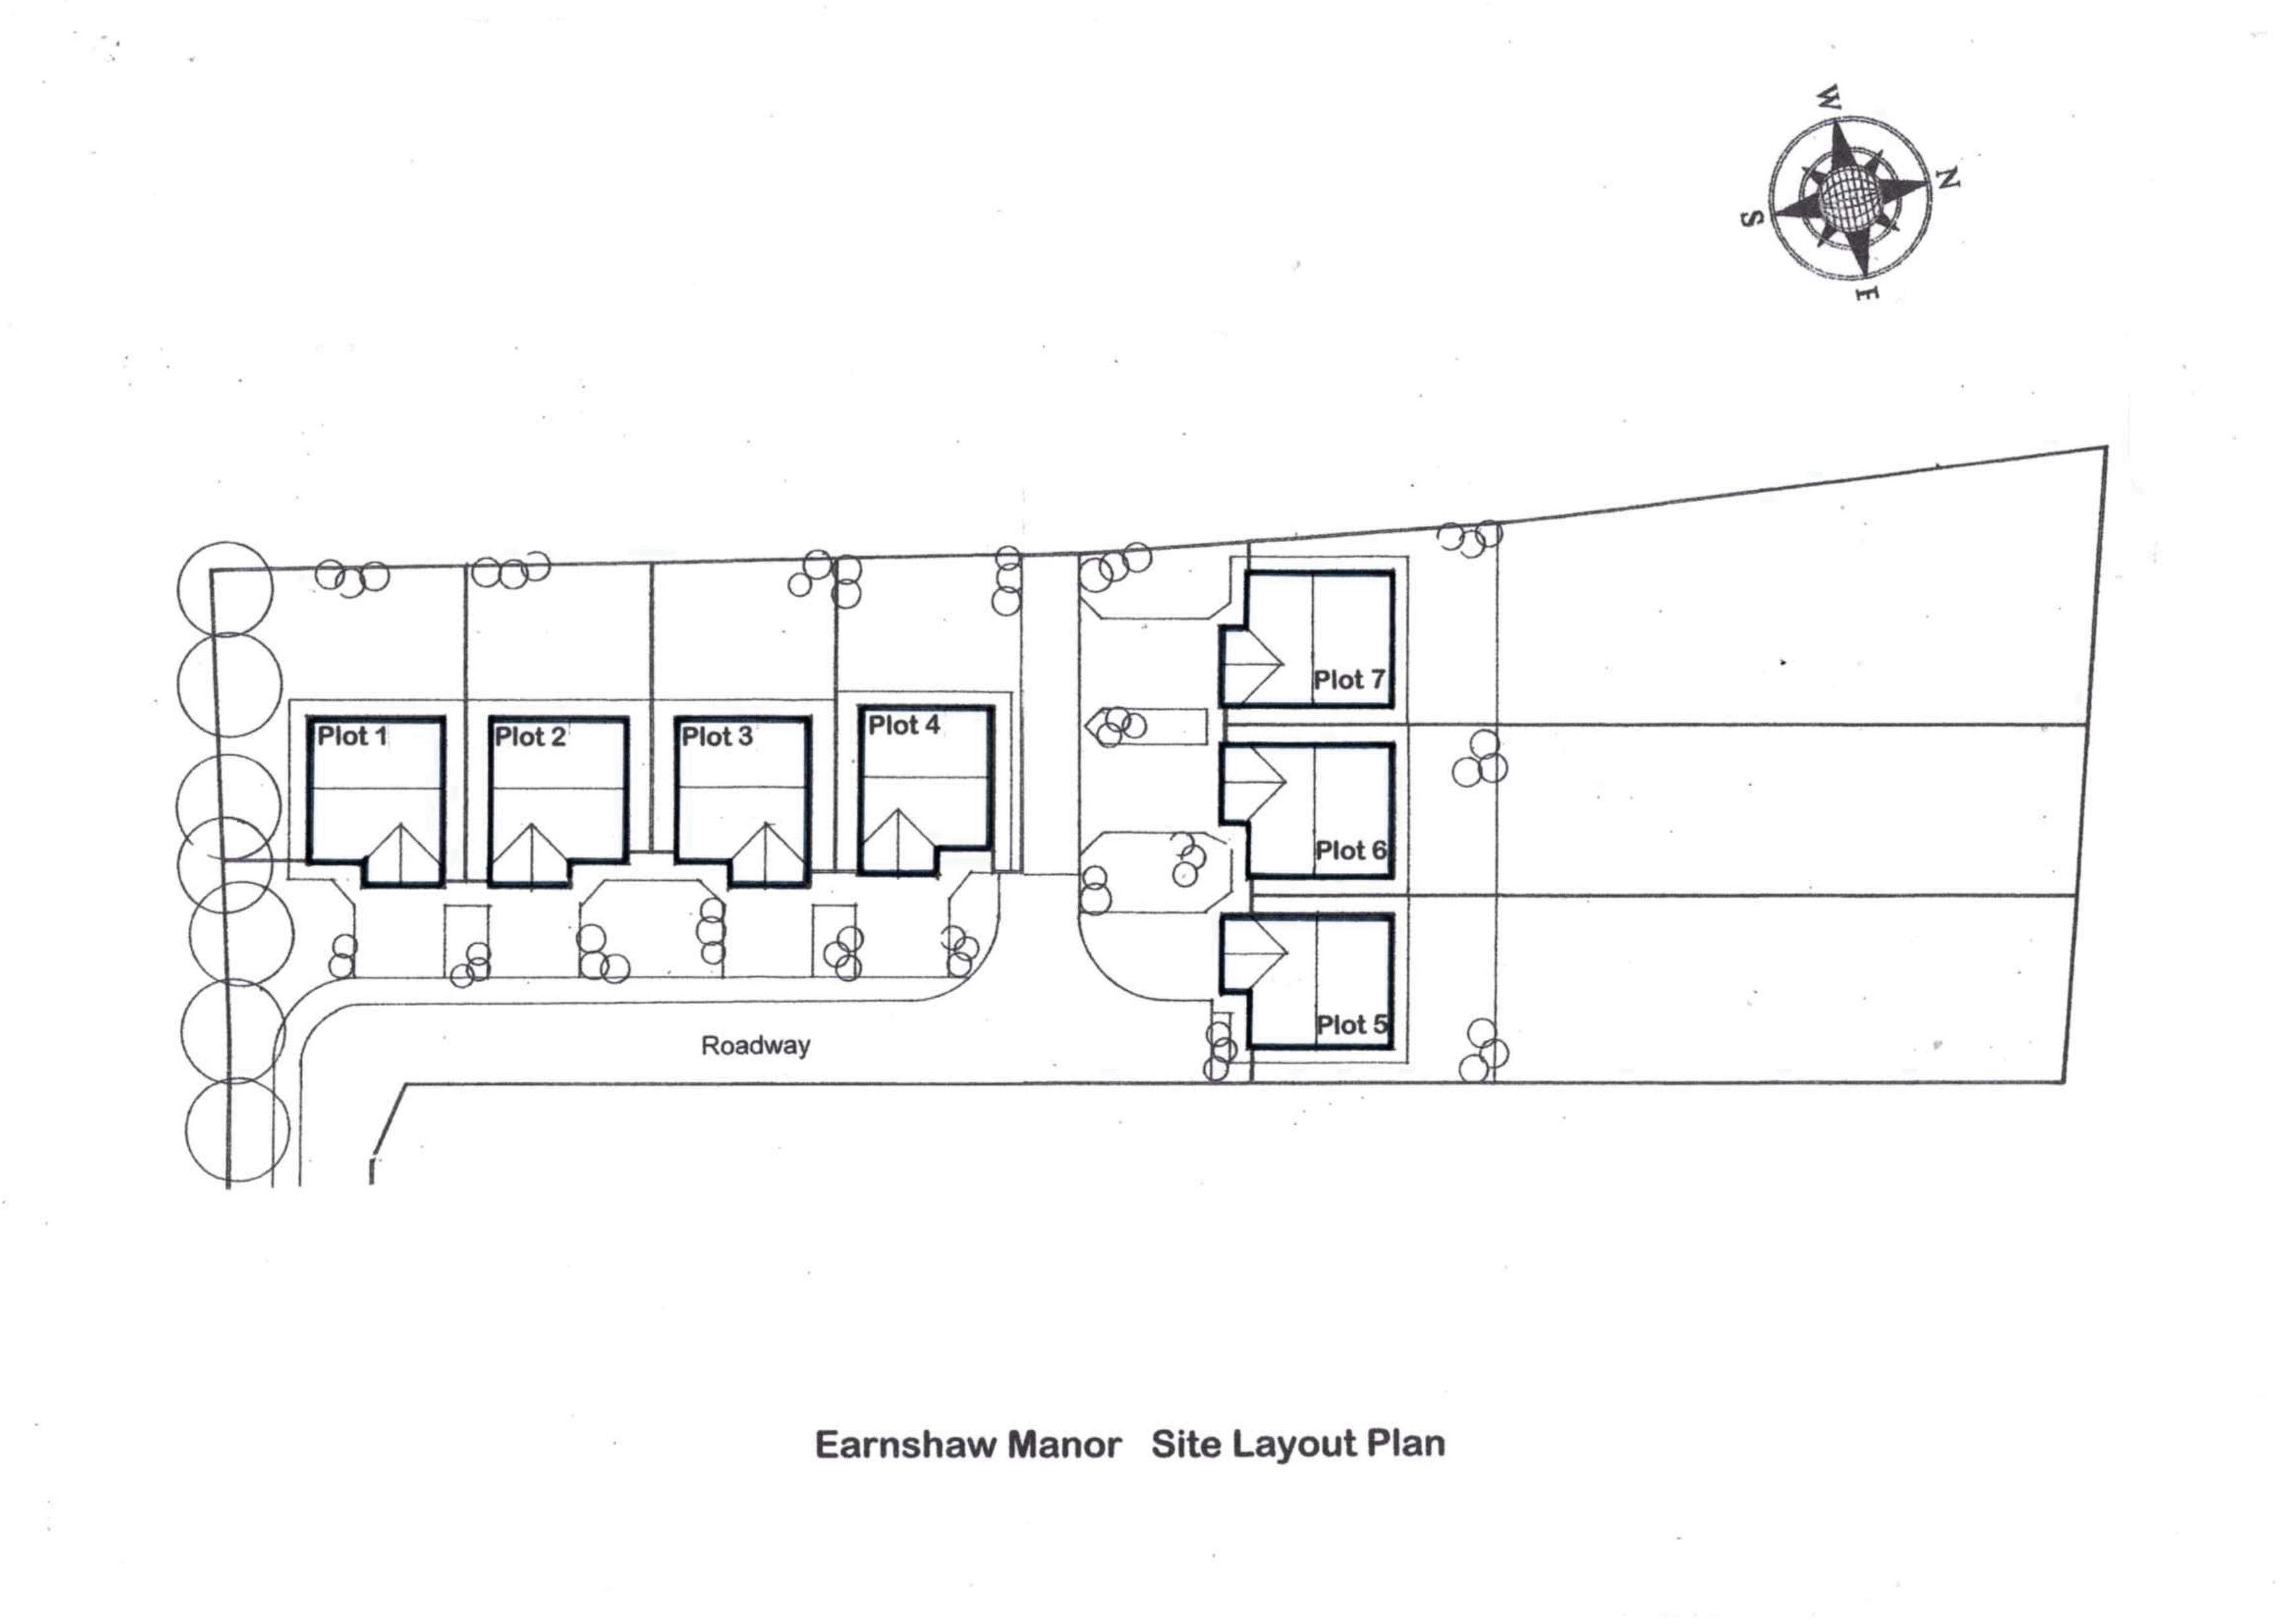 THE LAYOUT OF THE 7 HOMES